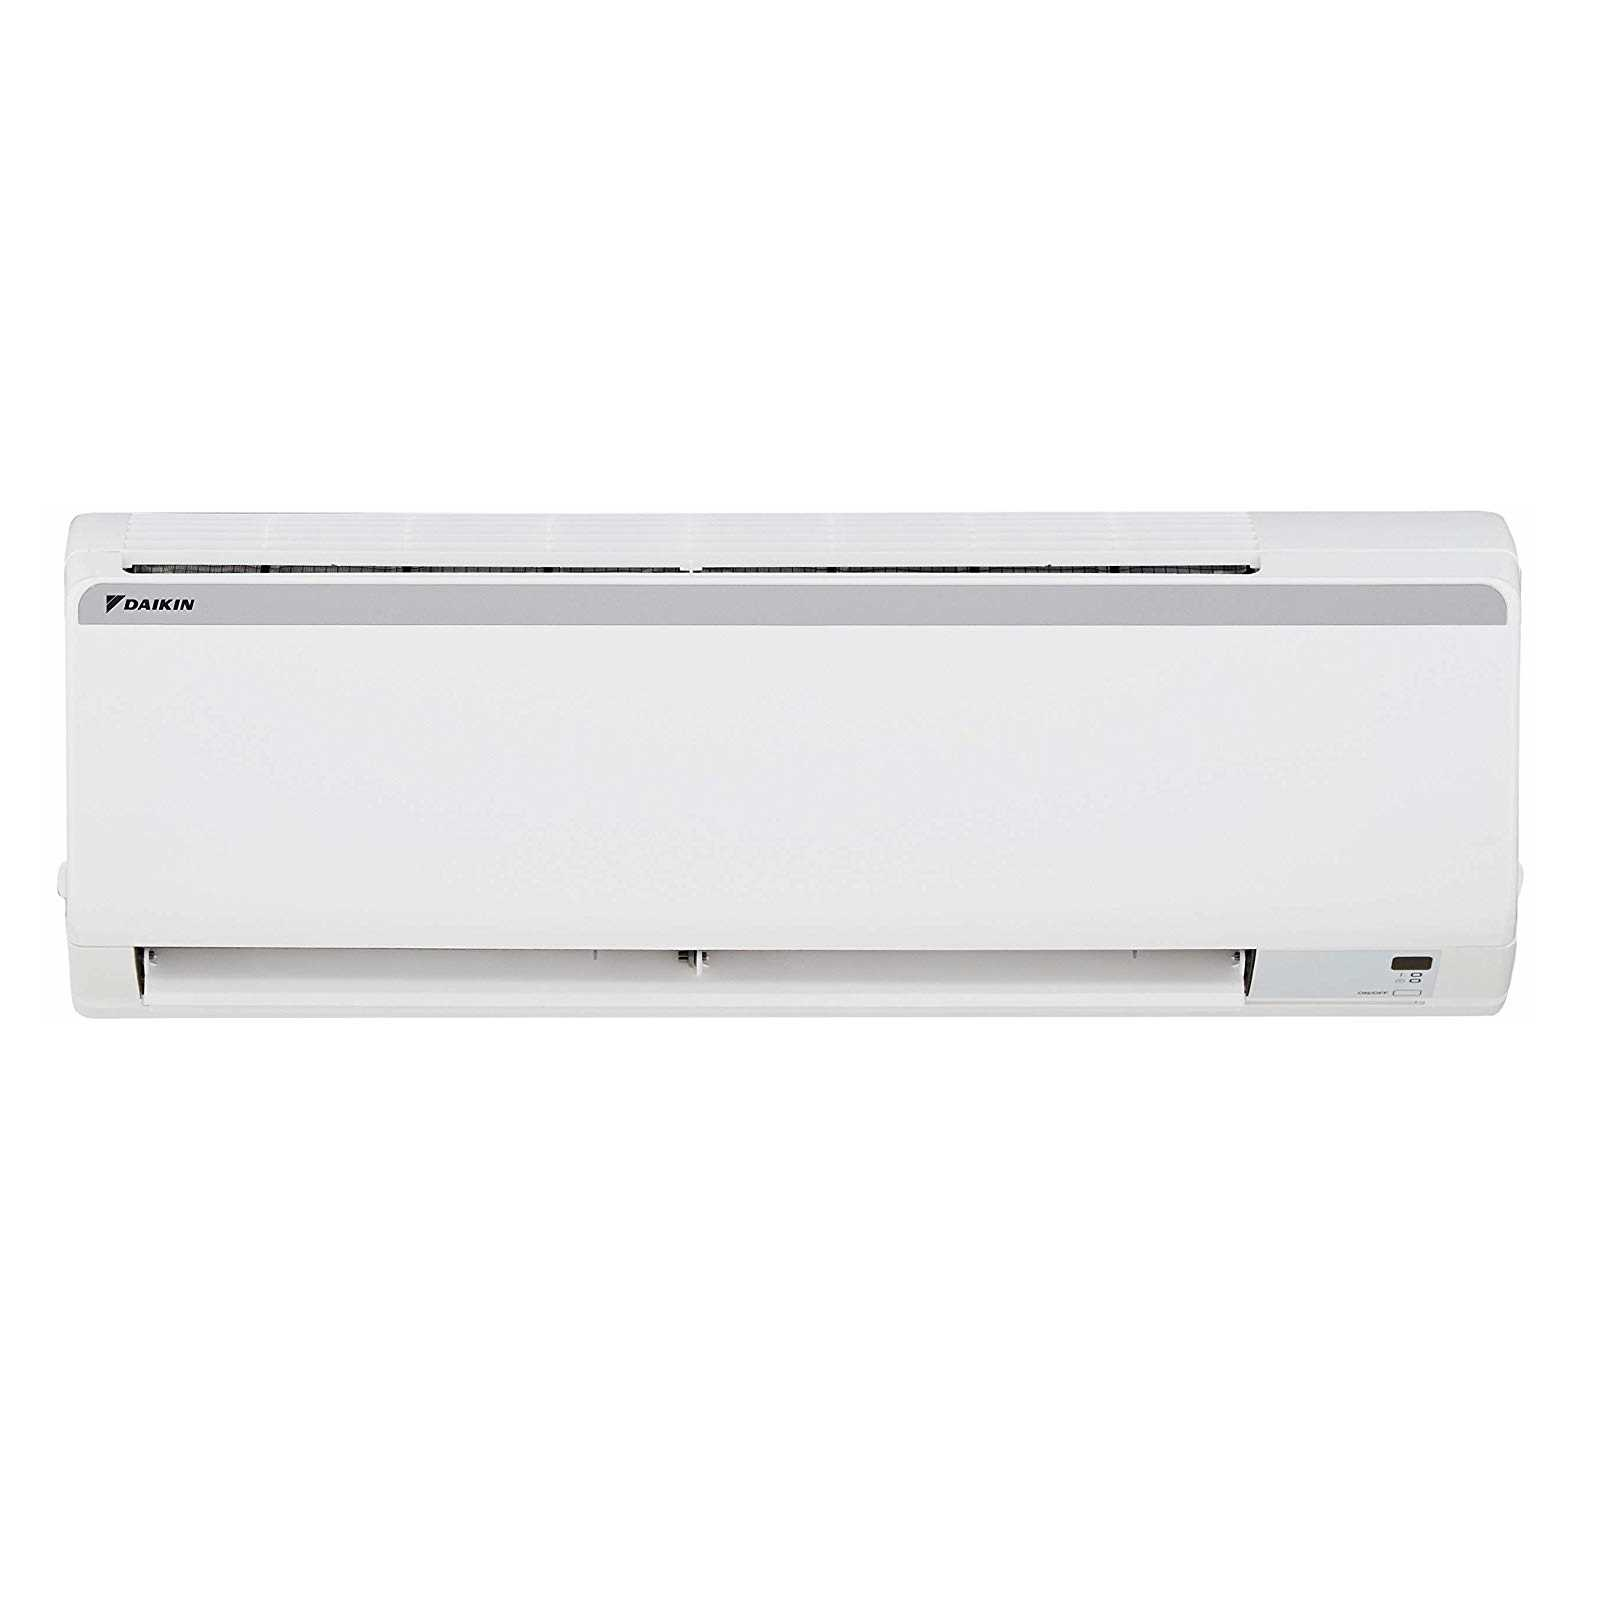 Daikin FTQ35TV 1 Ton 2 Star 2018 Split AC